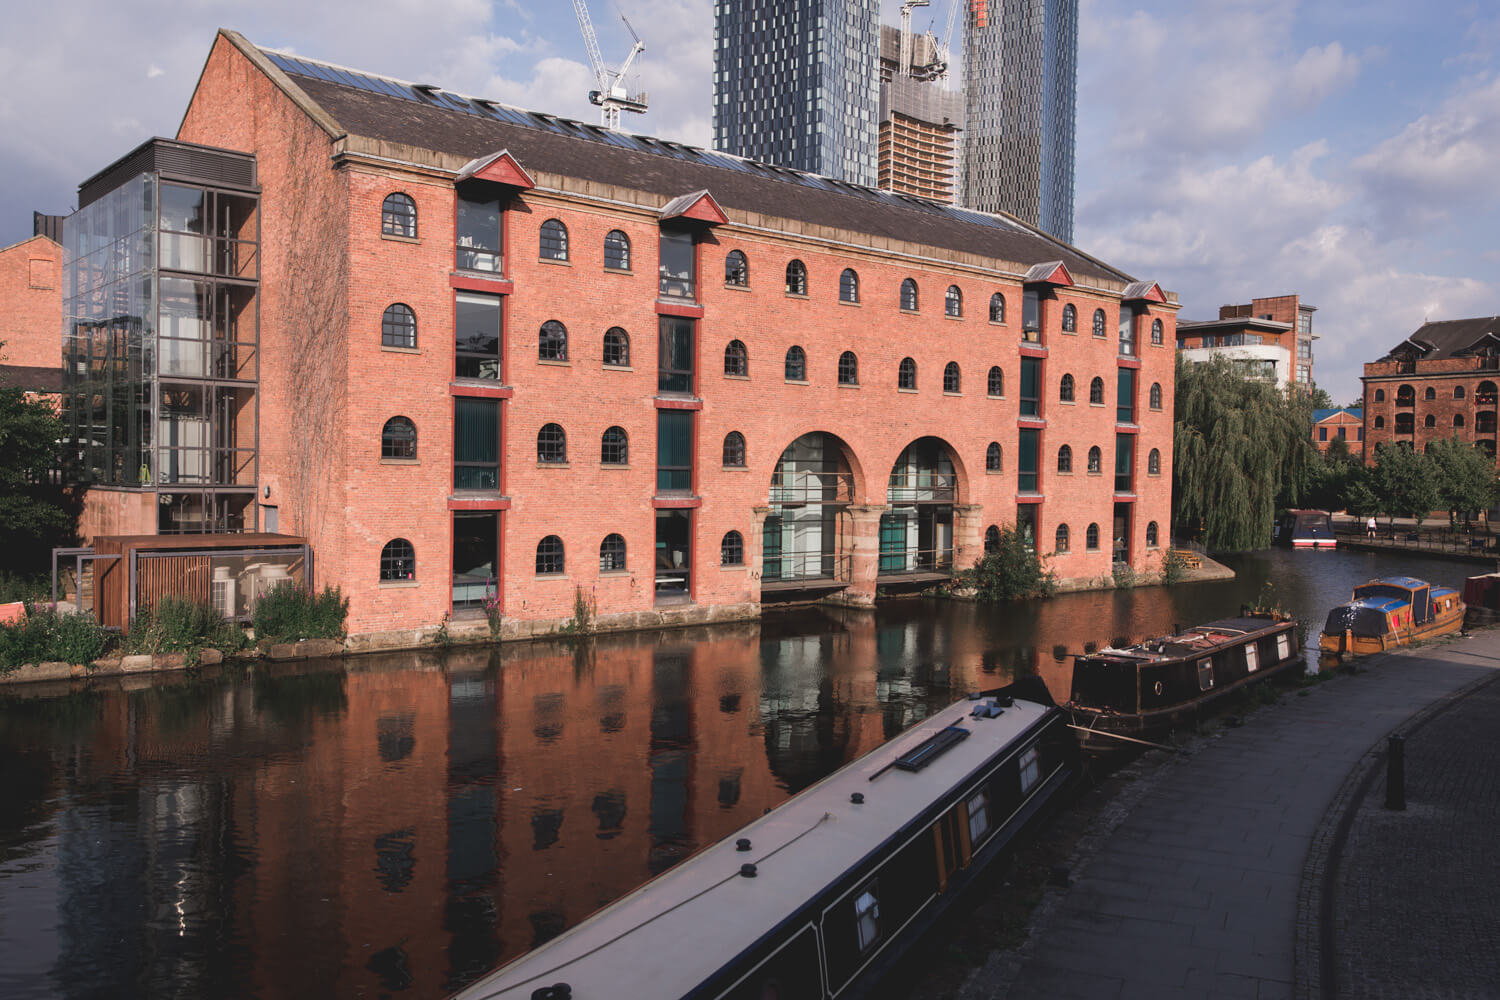 Brick building with many windows on a canal in Castlefield in Manchester, UK